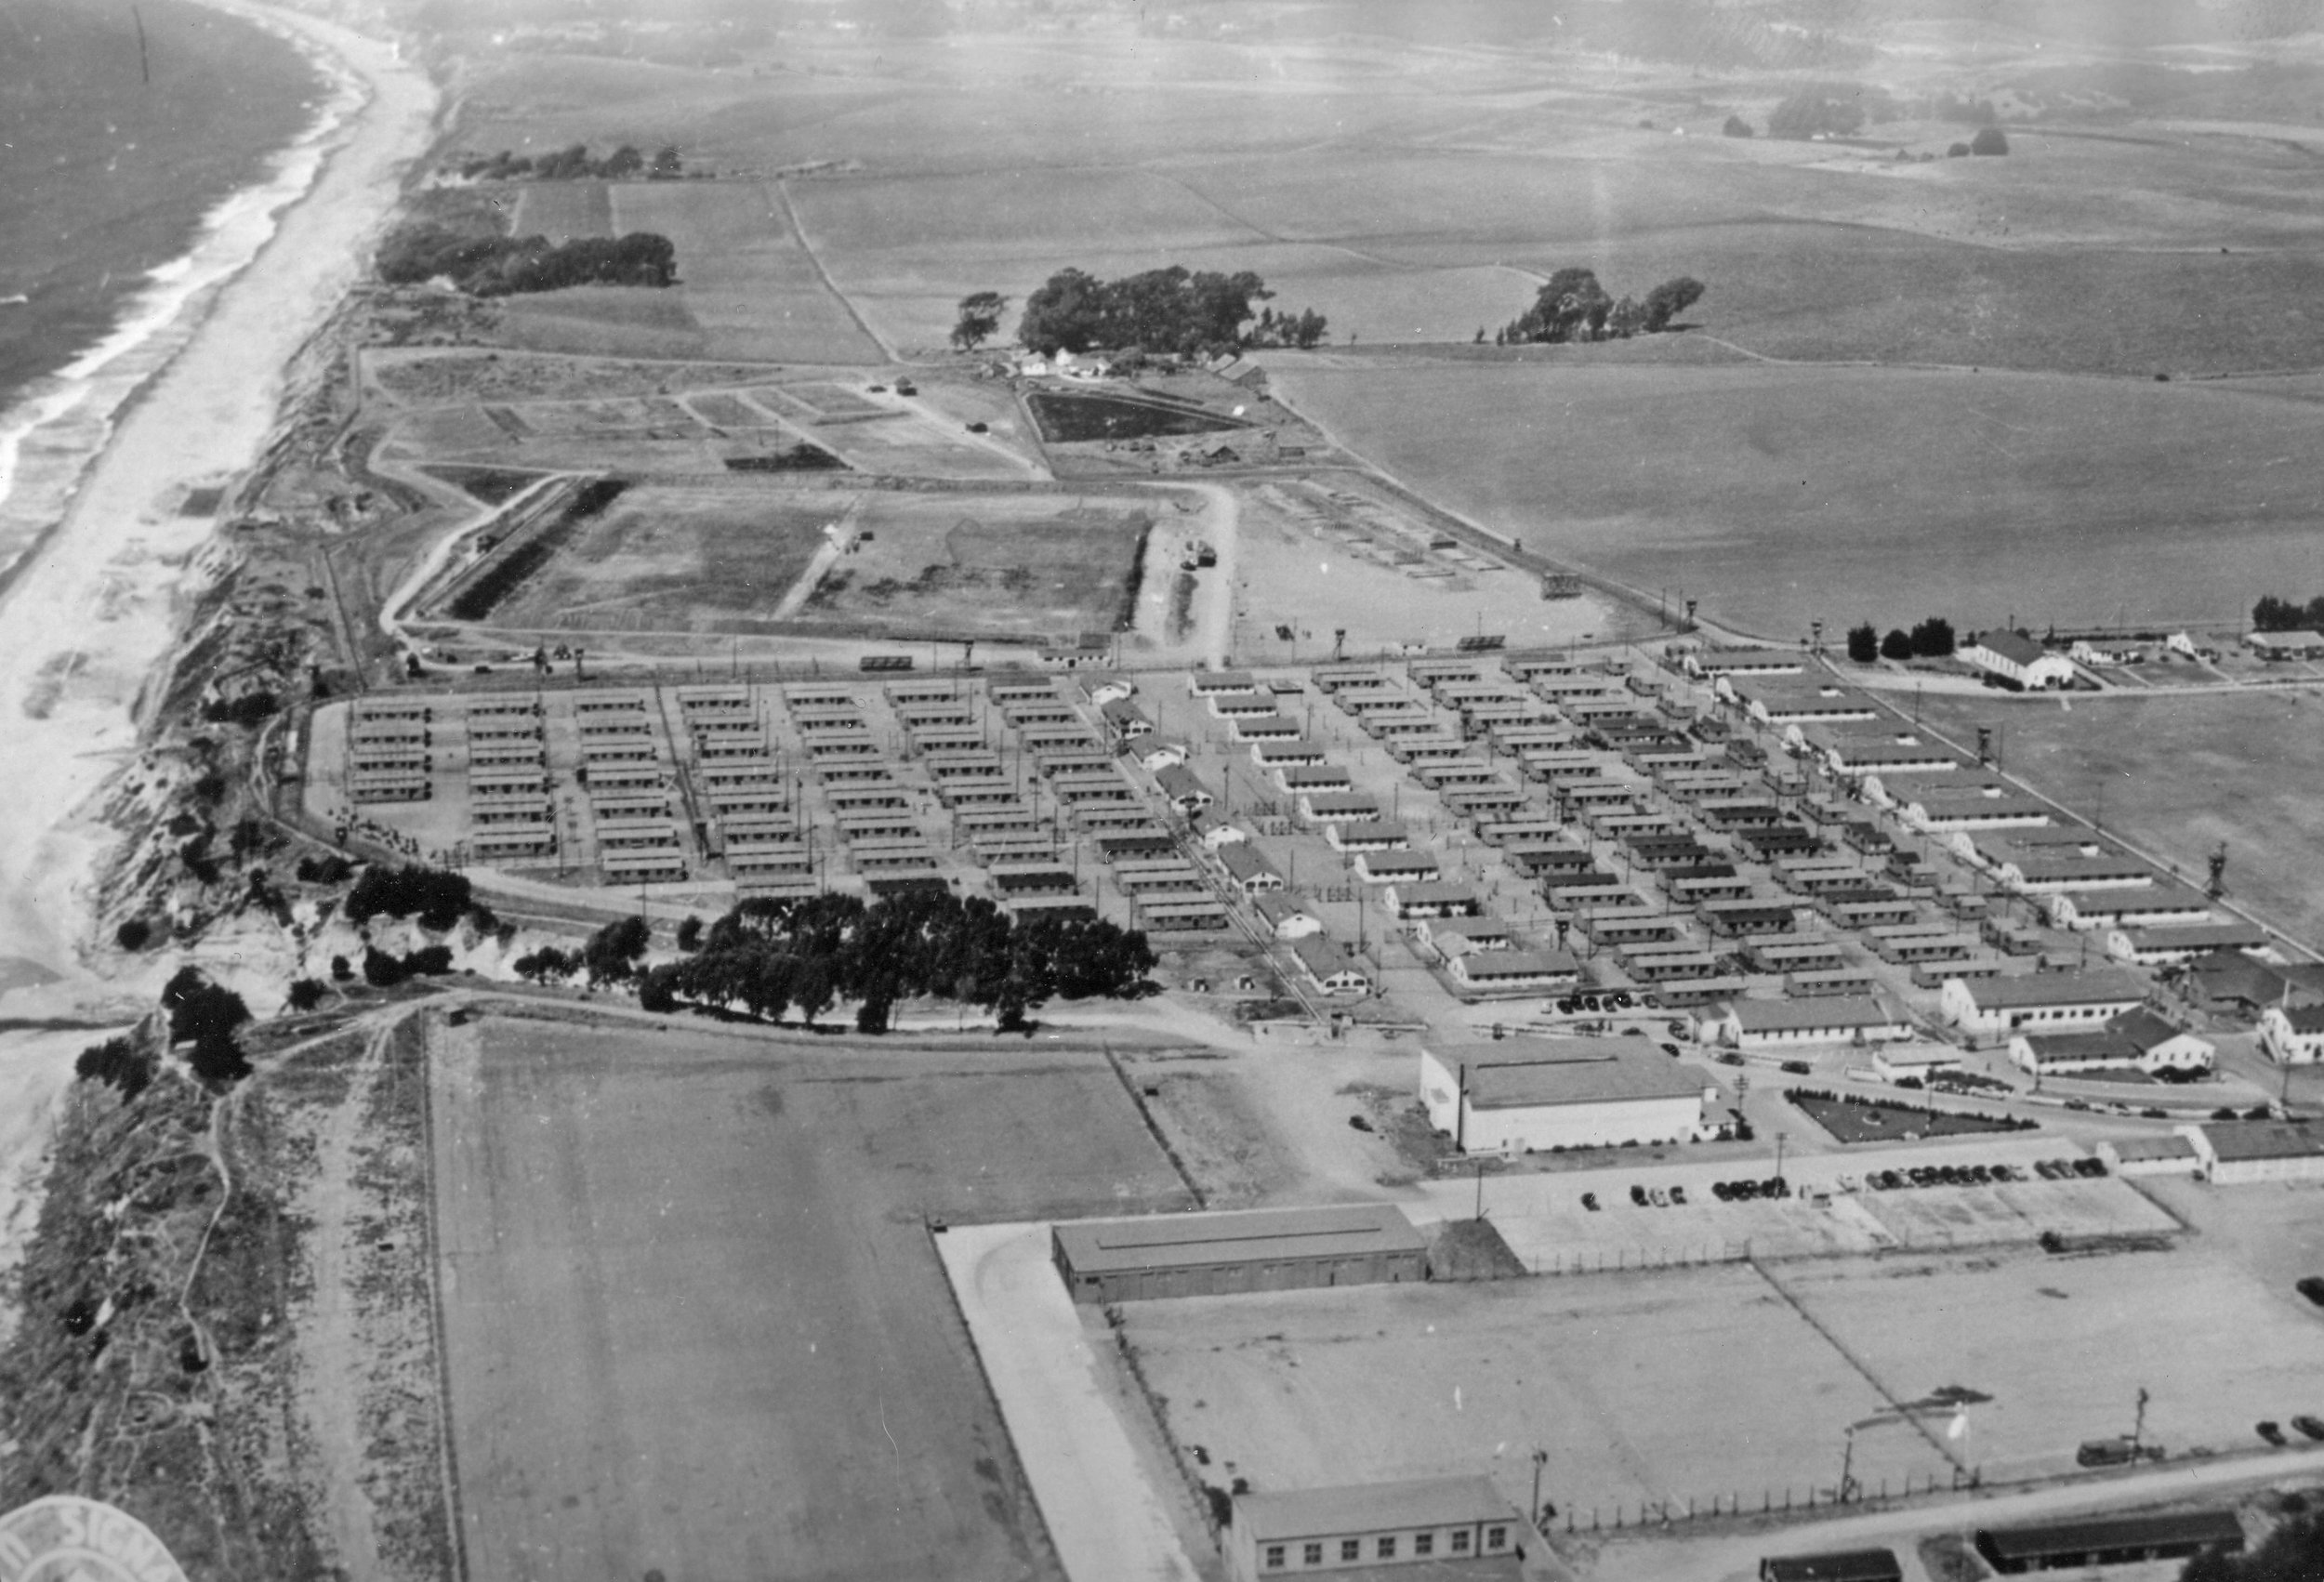 One of the earliest promising efforts to establish a county-wide junior college in Santa Cruz County was in 1948 when the Federal government offered Camp McQuaide as war surplus property for…$1.00. The State Department of Education nixed the idea saying it was too remote from most of the county's population.